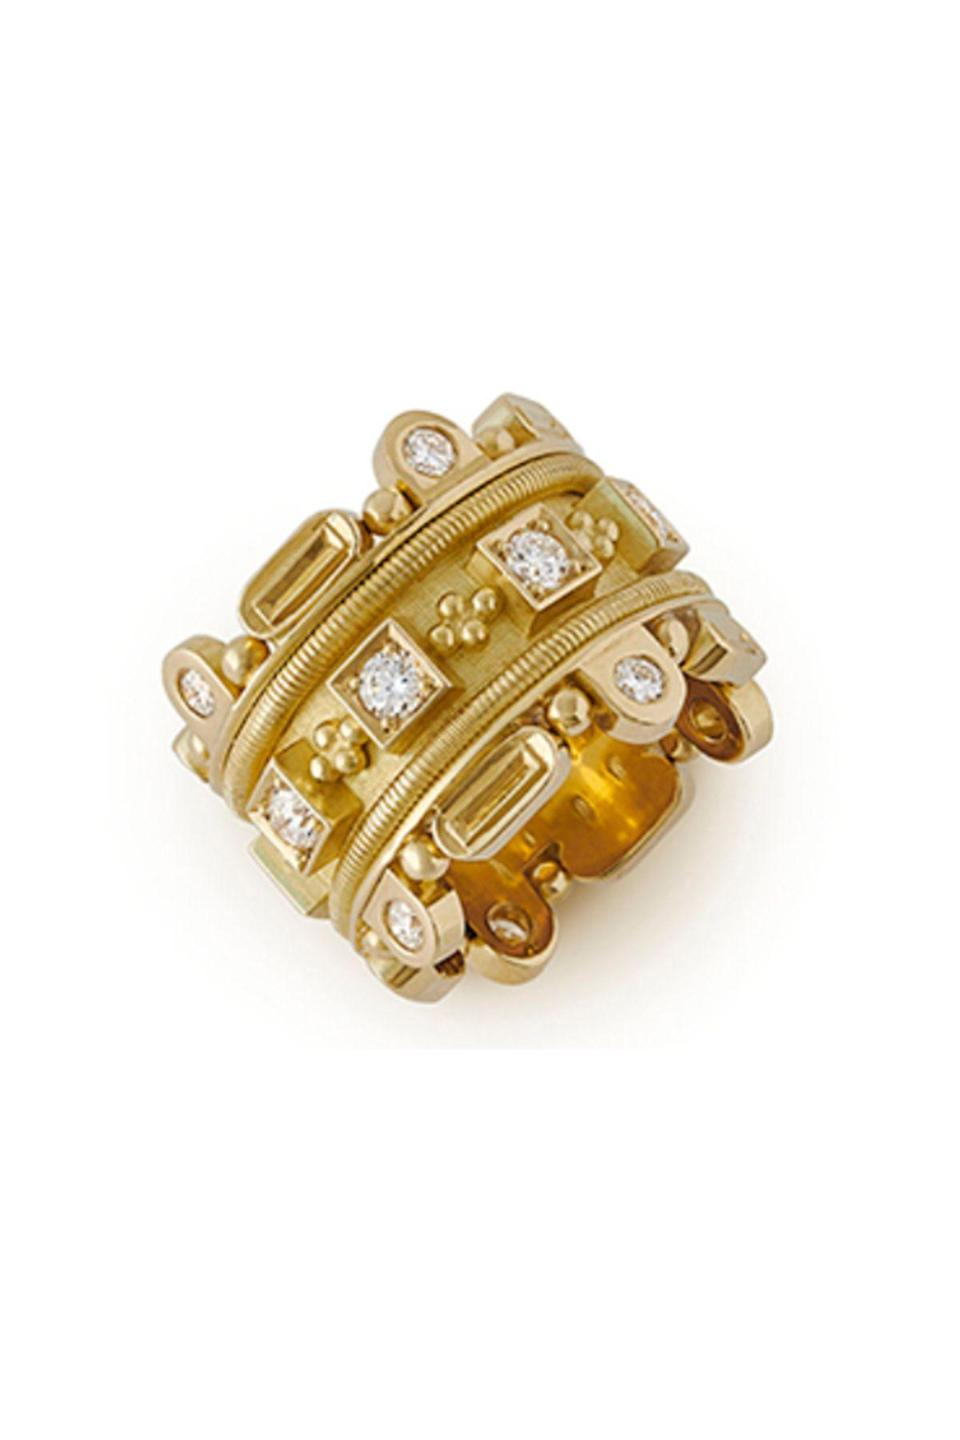 """<p><strong>Elizabeth Gage</strong></p><p>elizabeth-gage.com</p><p><strong>$22862.00</strong></p><p><a href=""""https://elizabeth-gage.com/rings/diamond-crown-ring/"""" rel=""""nofollow noopener"""" target=""""_blank"""" data-ylk=""""slk:Shop Now"""" class=""""link rapid-noclick-resp"""">Shop Now</a></p><p>The band of Elizabeth Gage's Diamond Crown Ring is as exquisite as the 16 diamonds circling it. </p>"""